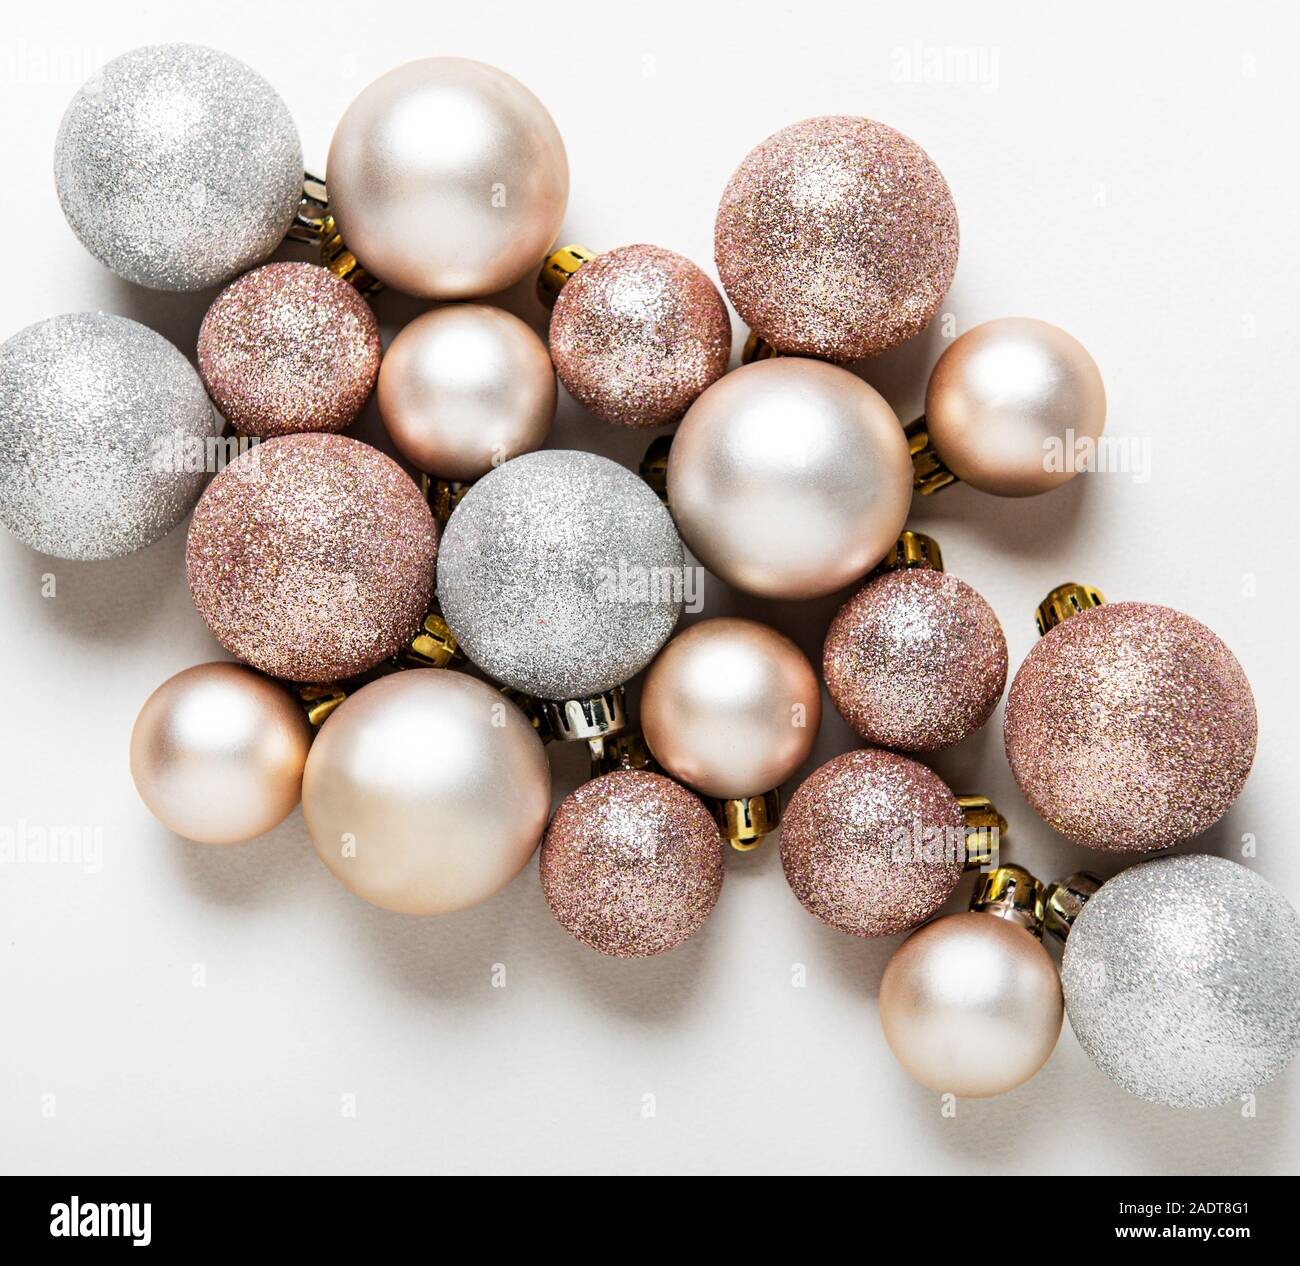 Christmas Balls Background Rose Gold And Silver Toys Baubles On White Background Festive Decoration Flat Lay Top View Stock Photo Alamy